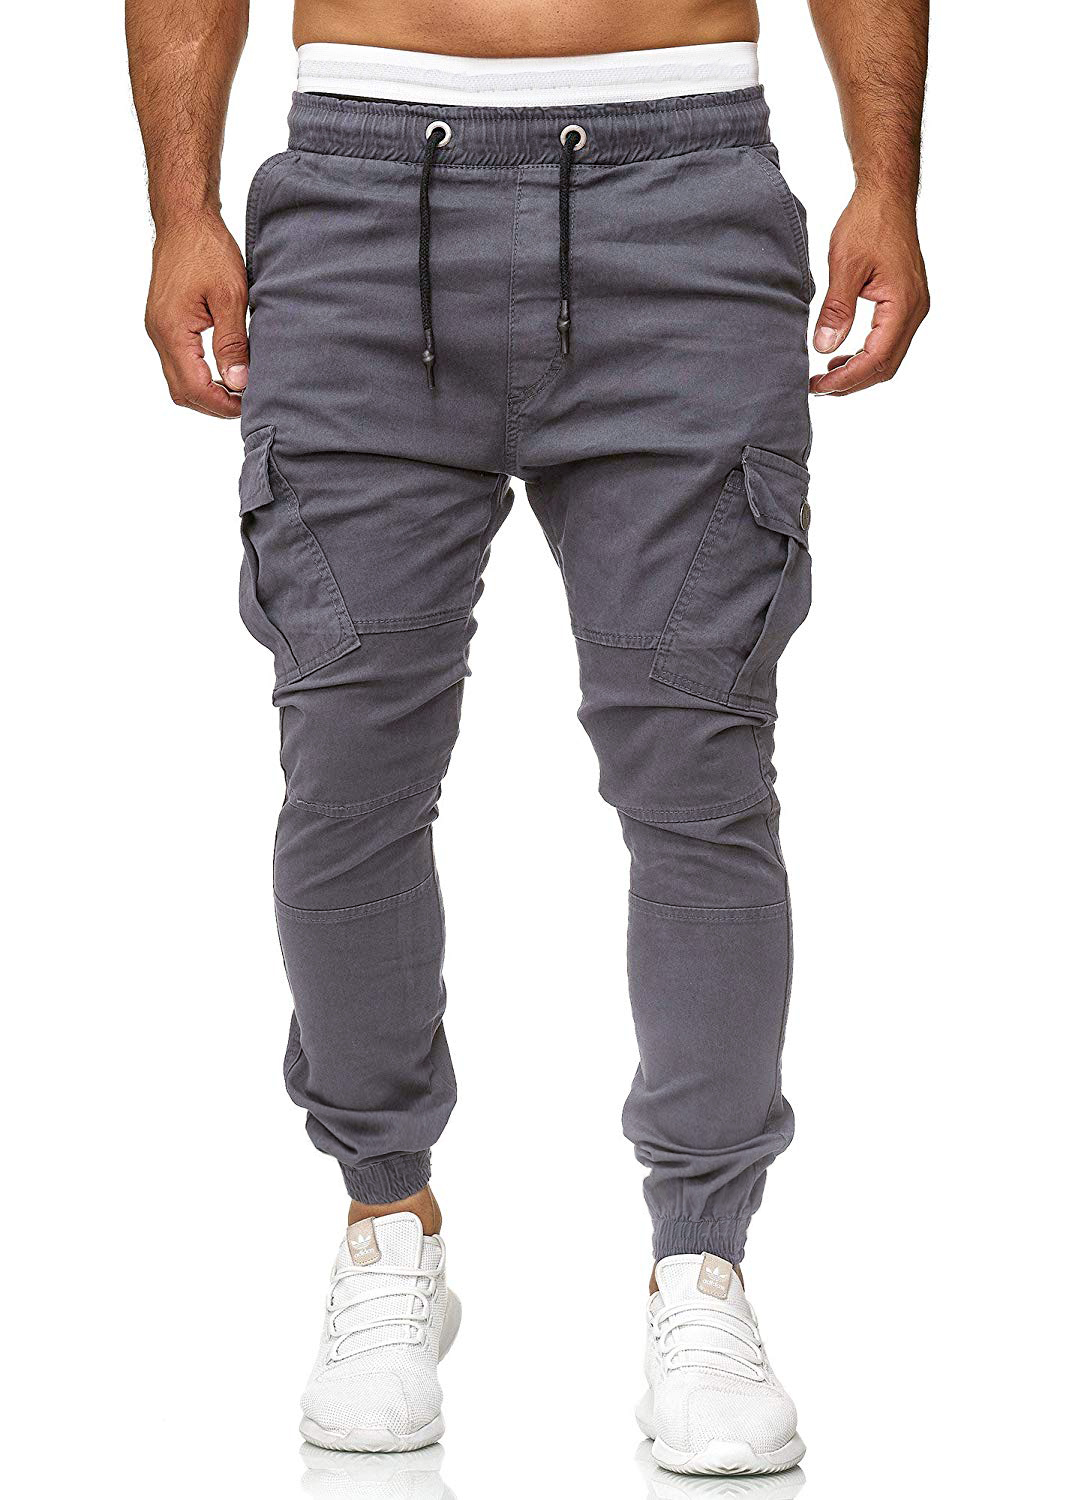 Men Casual Jogger font b Slim b font Fit Pants Solid Drawsting Urban Straight Leg Trouser